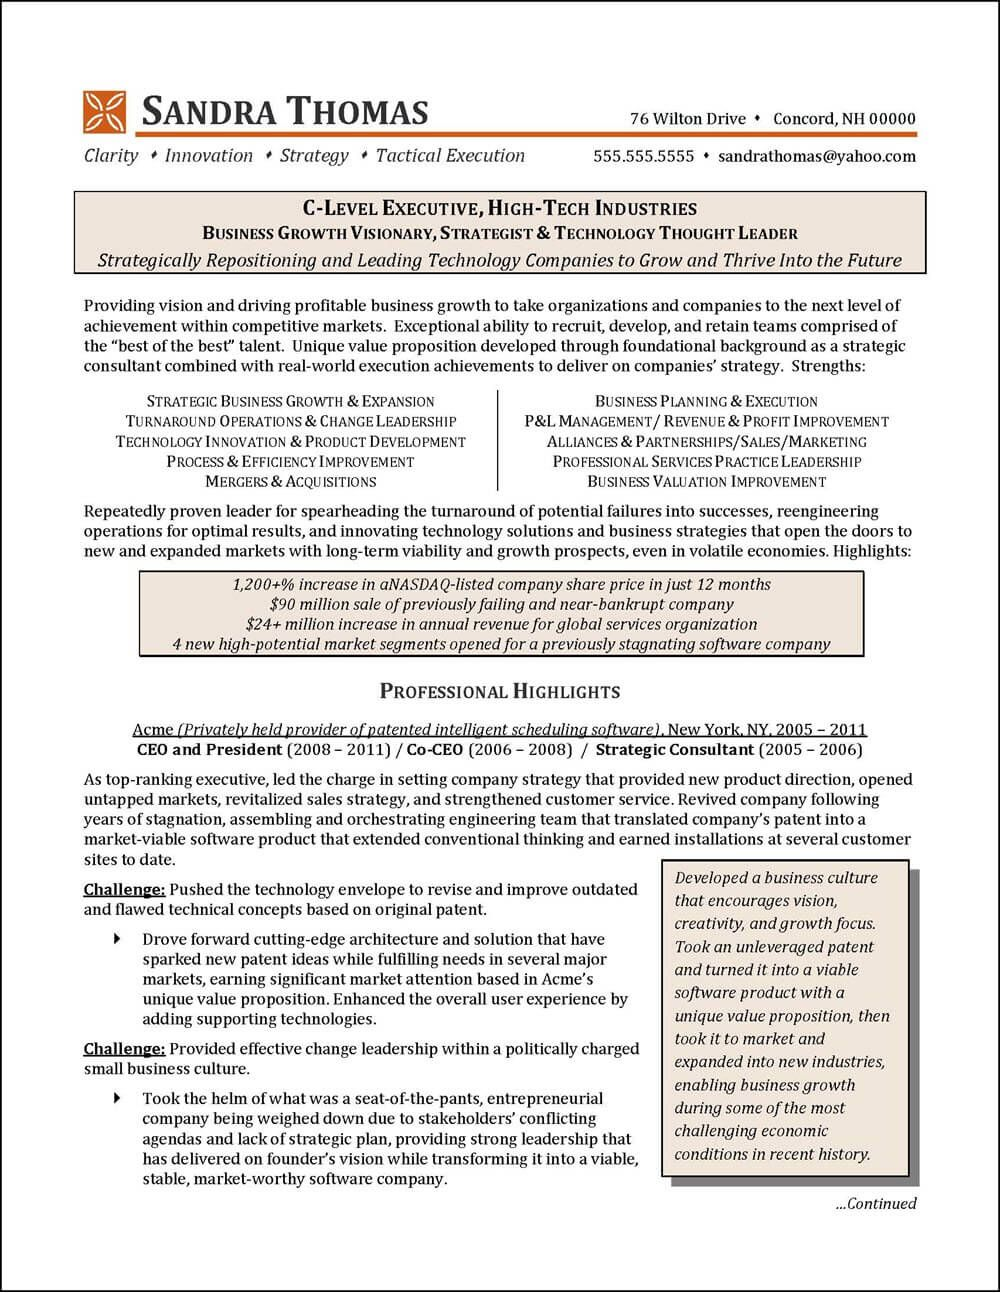 National Award Winning Executive Resume Examples Executive Cover Letter Examples Infographic Resume Exa Executive Resume Resume Examples Good Resume Examples